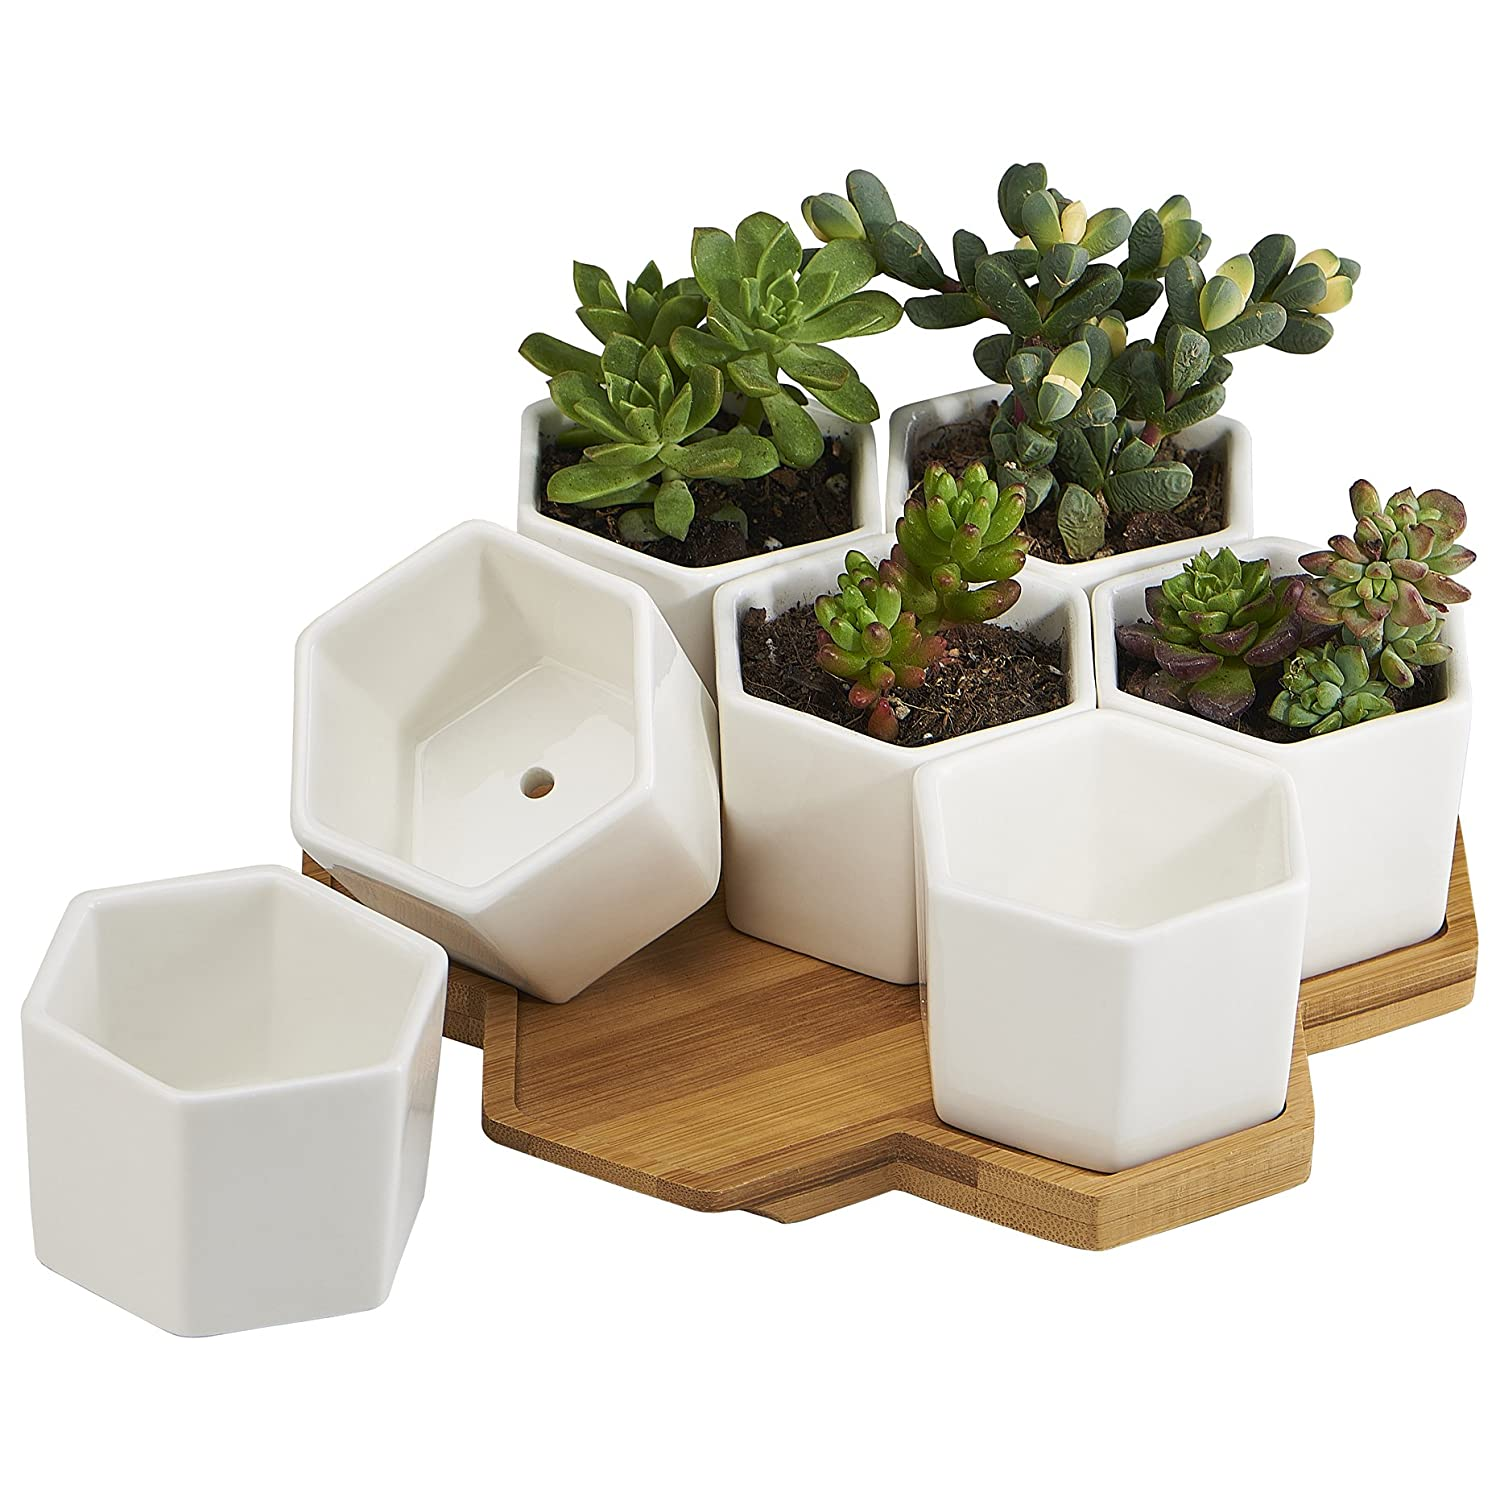 FLOWERPLUS Planter Pots Indoor, 7 Pack 2.75 Inch Modern White Ceramic Small Hex Succulent Cactus Flower Plant Pot with Bamboo Tray for Indoors Outdoor Office Home Garden Kitchen Decor Hexagon